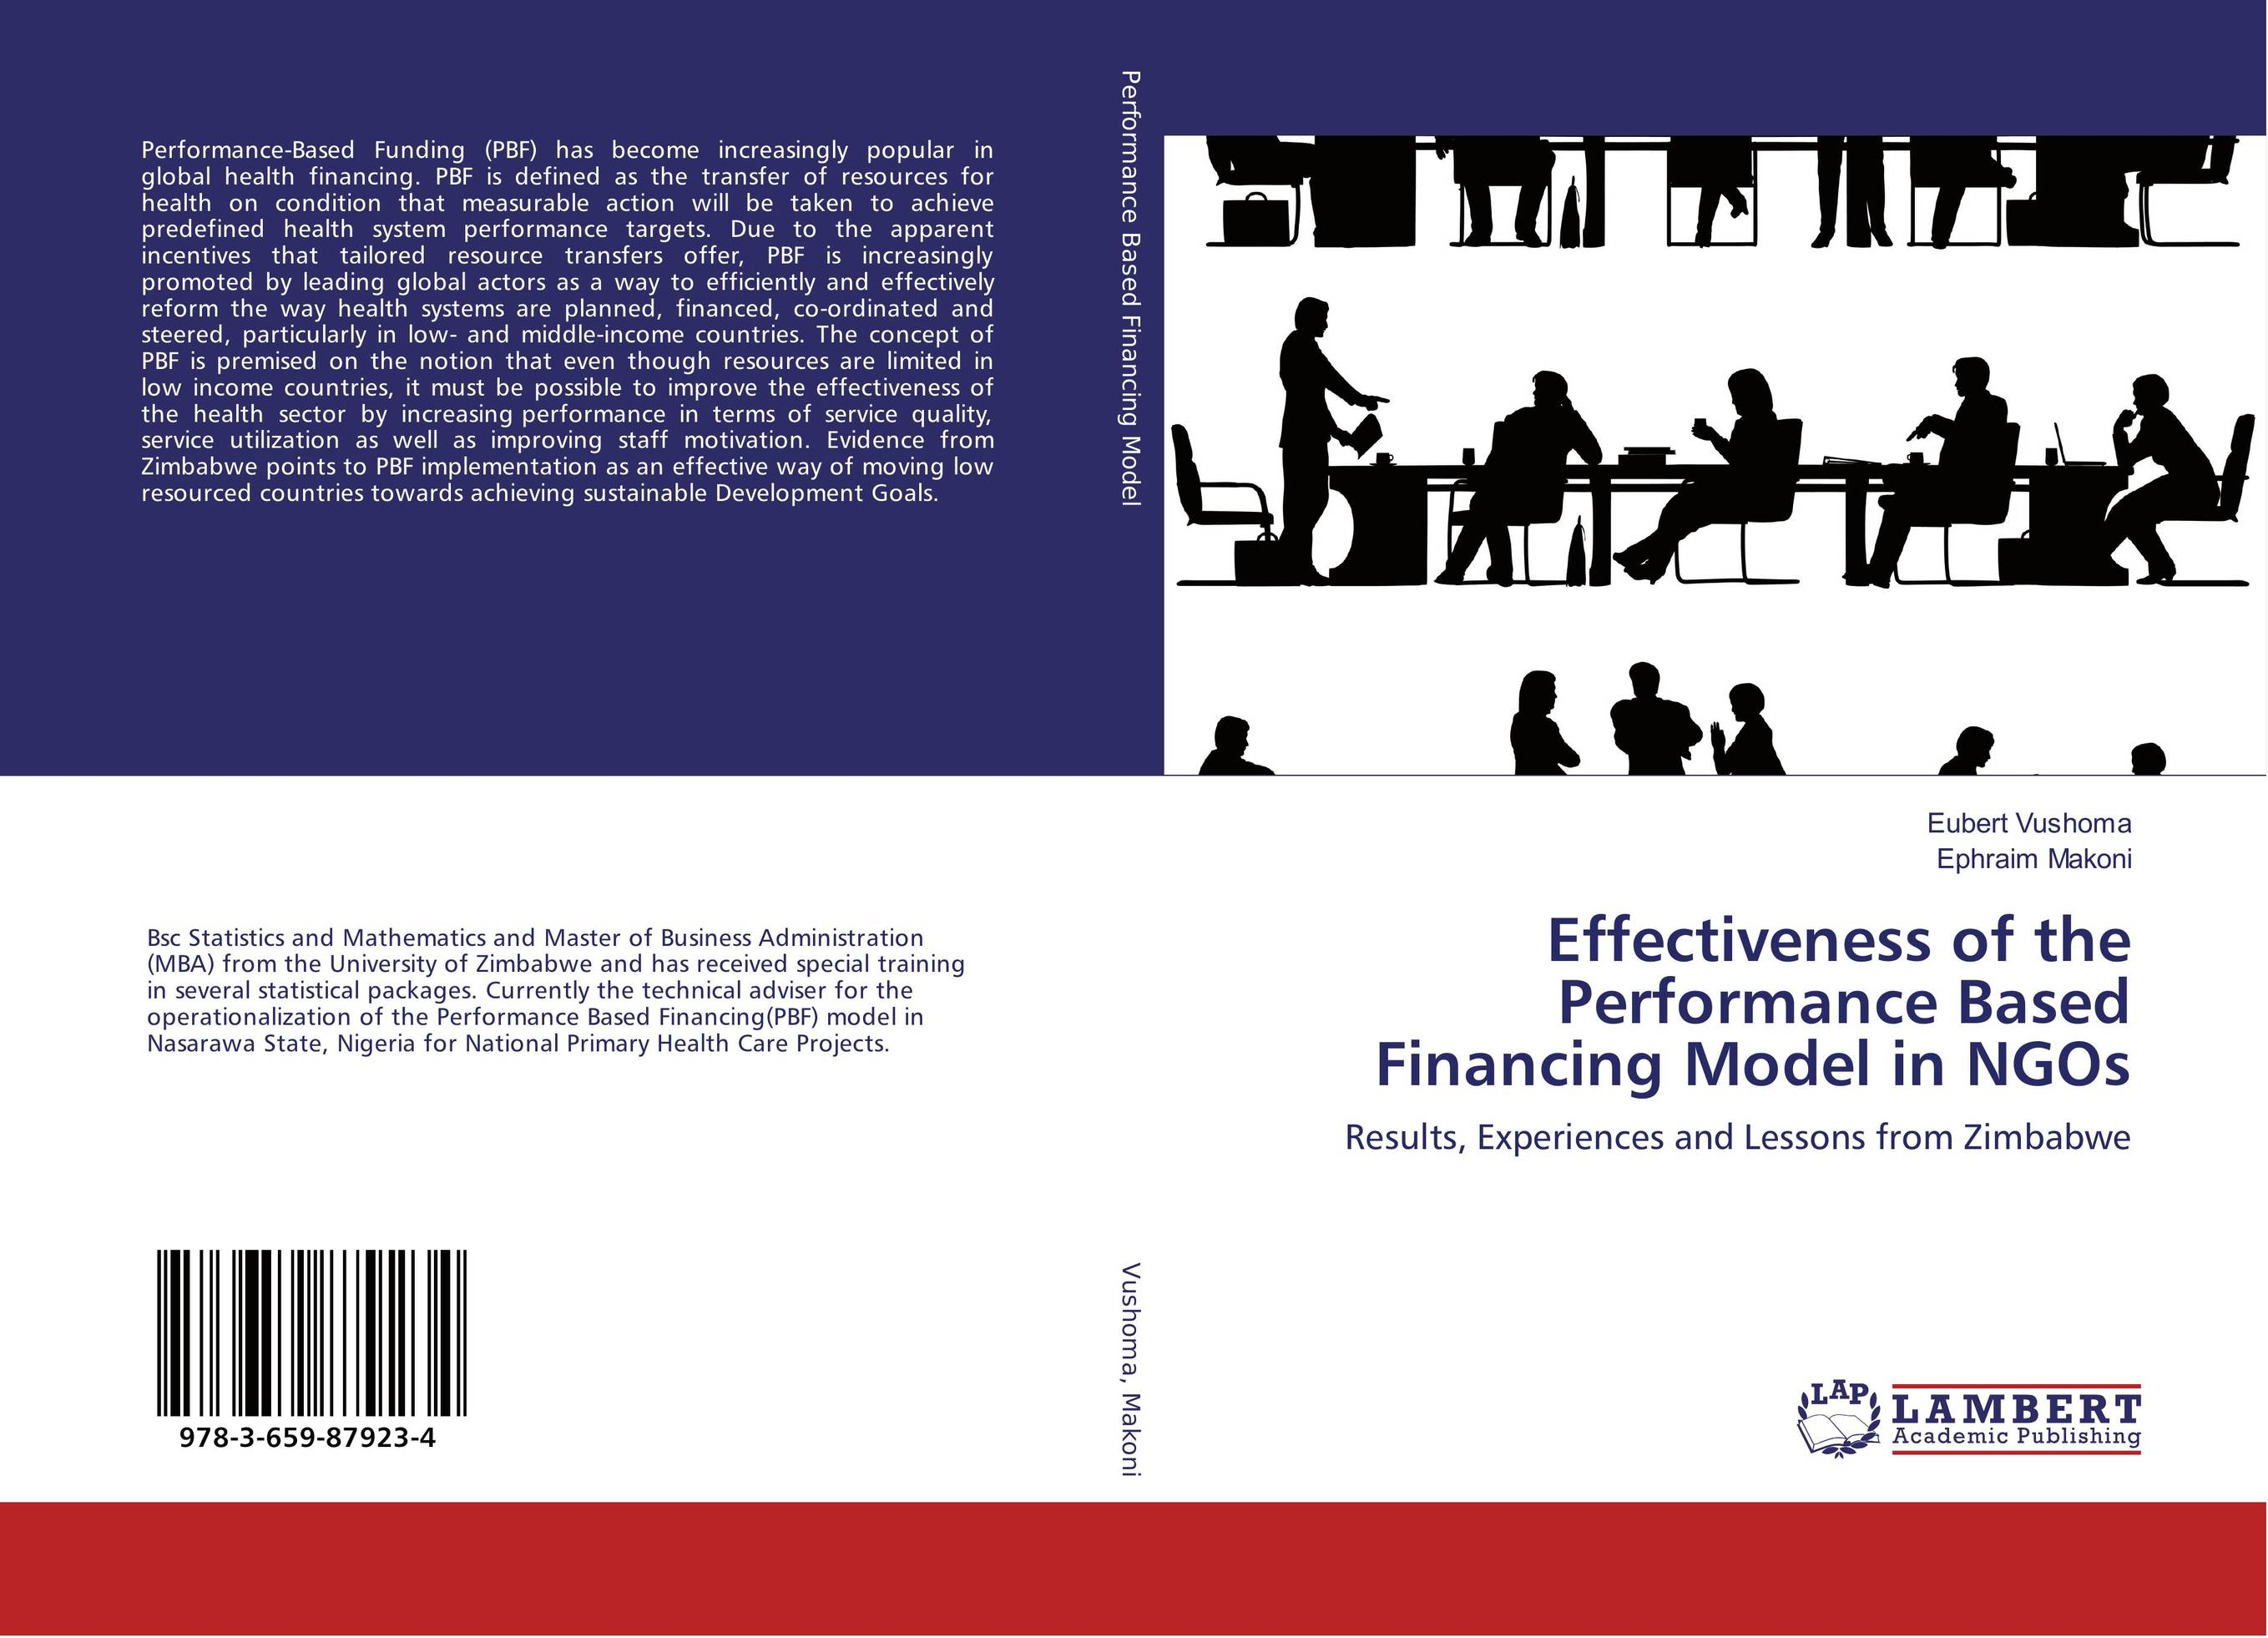 Effectiveness of the Performance Based Financing Model in NGOs ricom вешалка для одежды ricom 1905 dl hrvfa